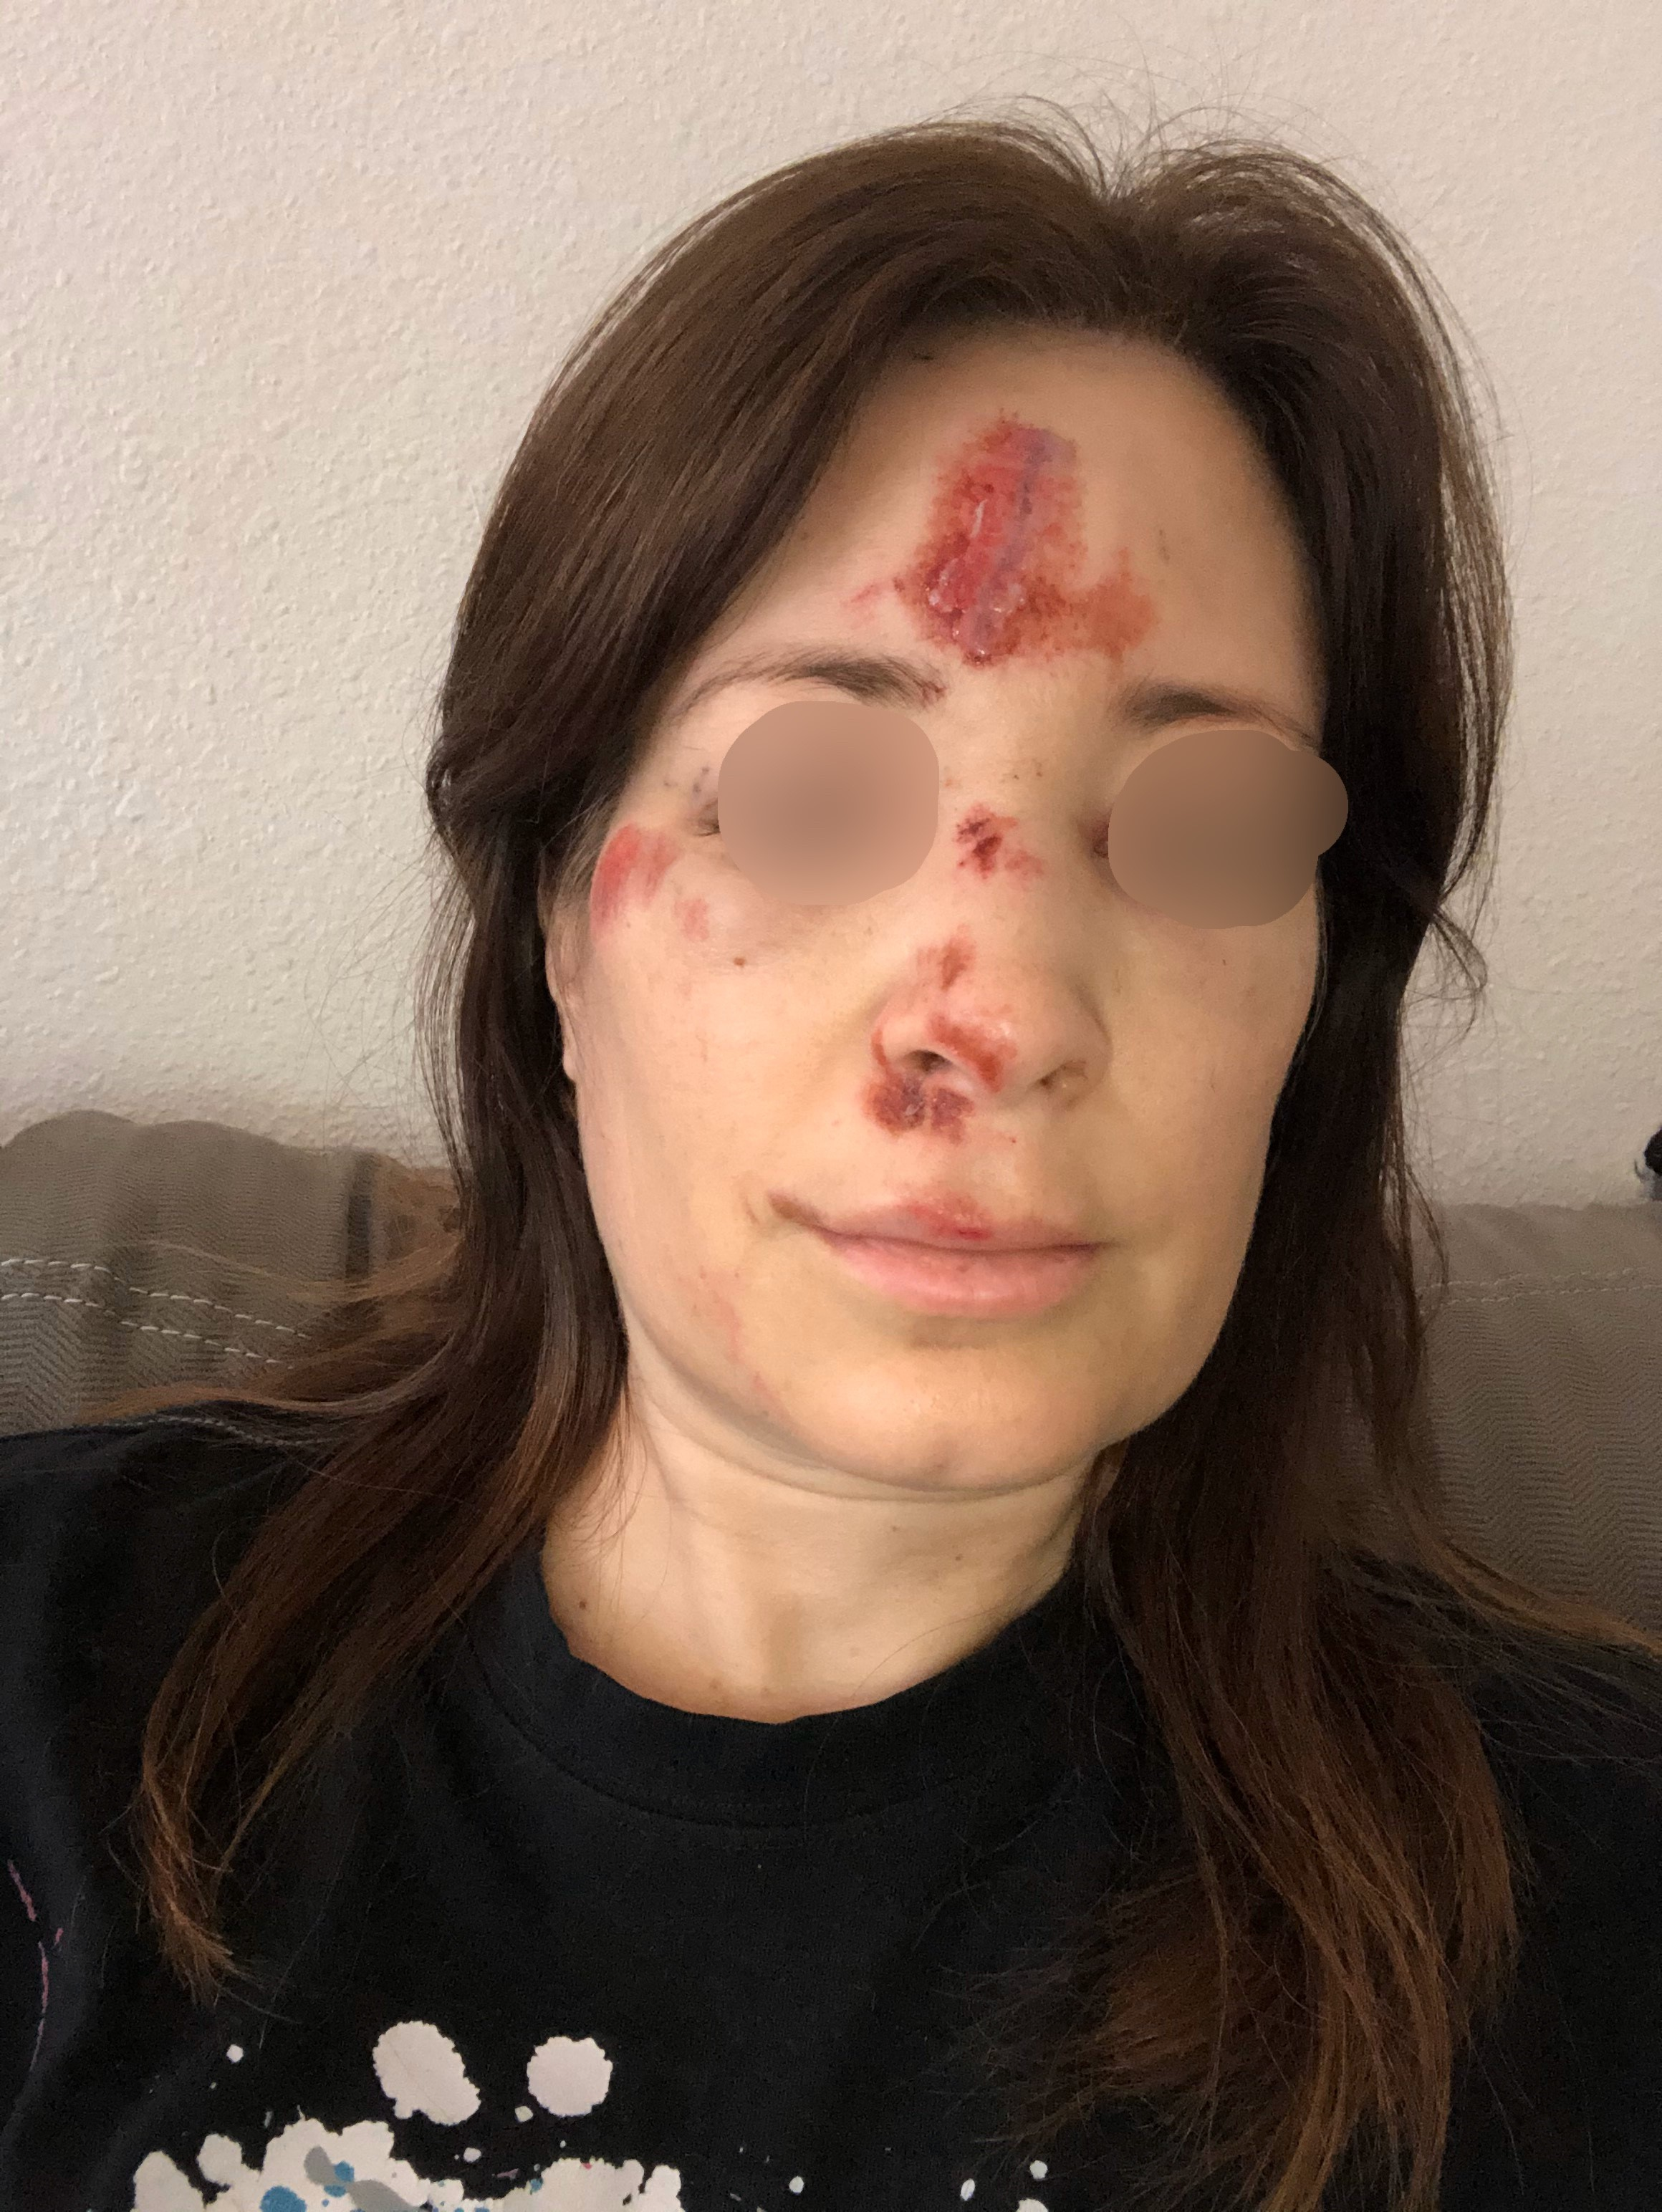 Woman with road rash on her face from e-scooter accident